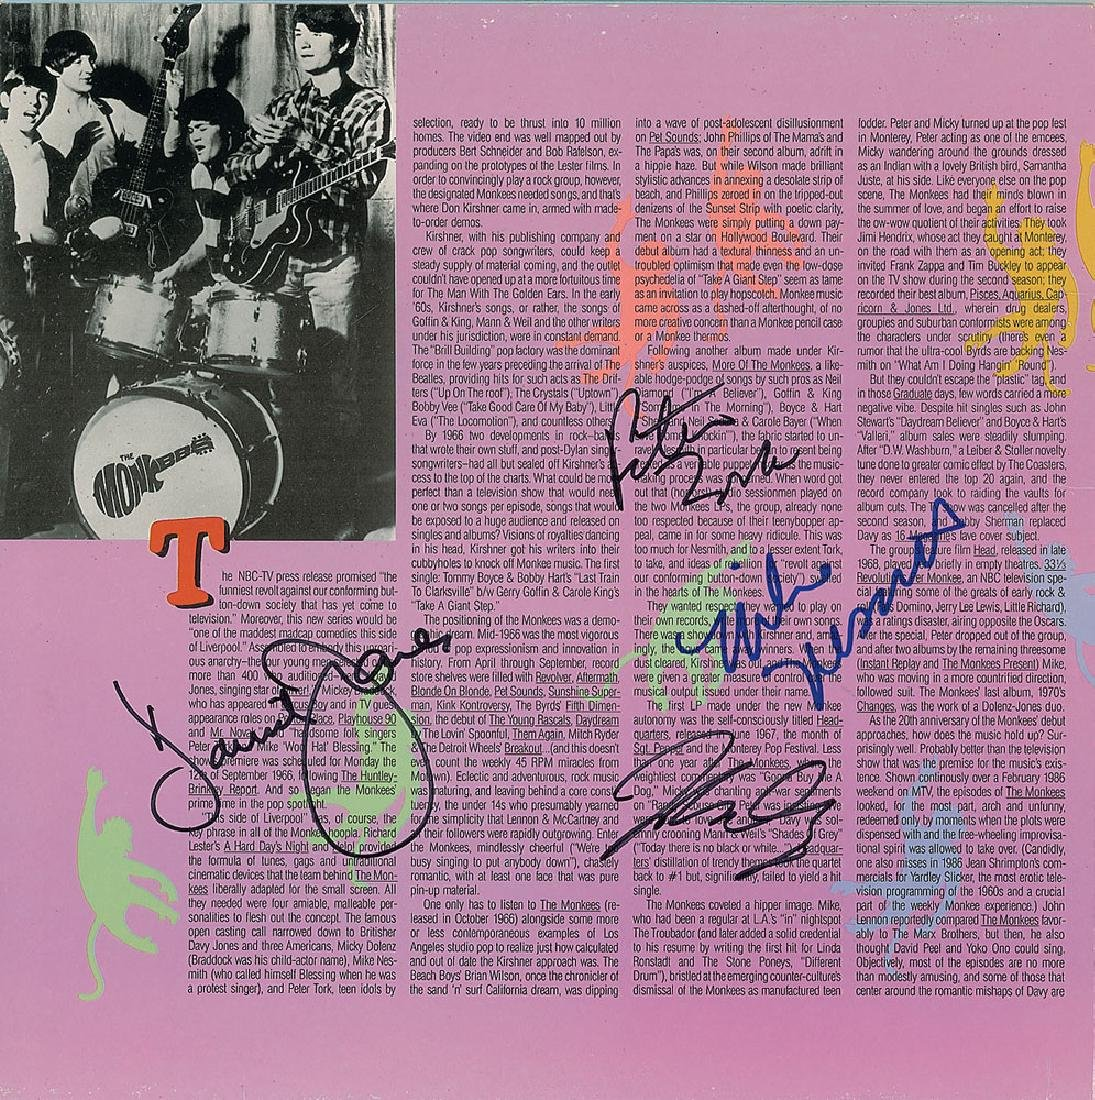 The Monkees Signed Album